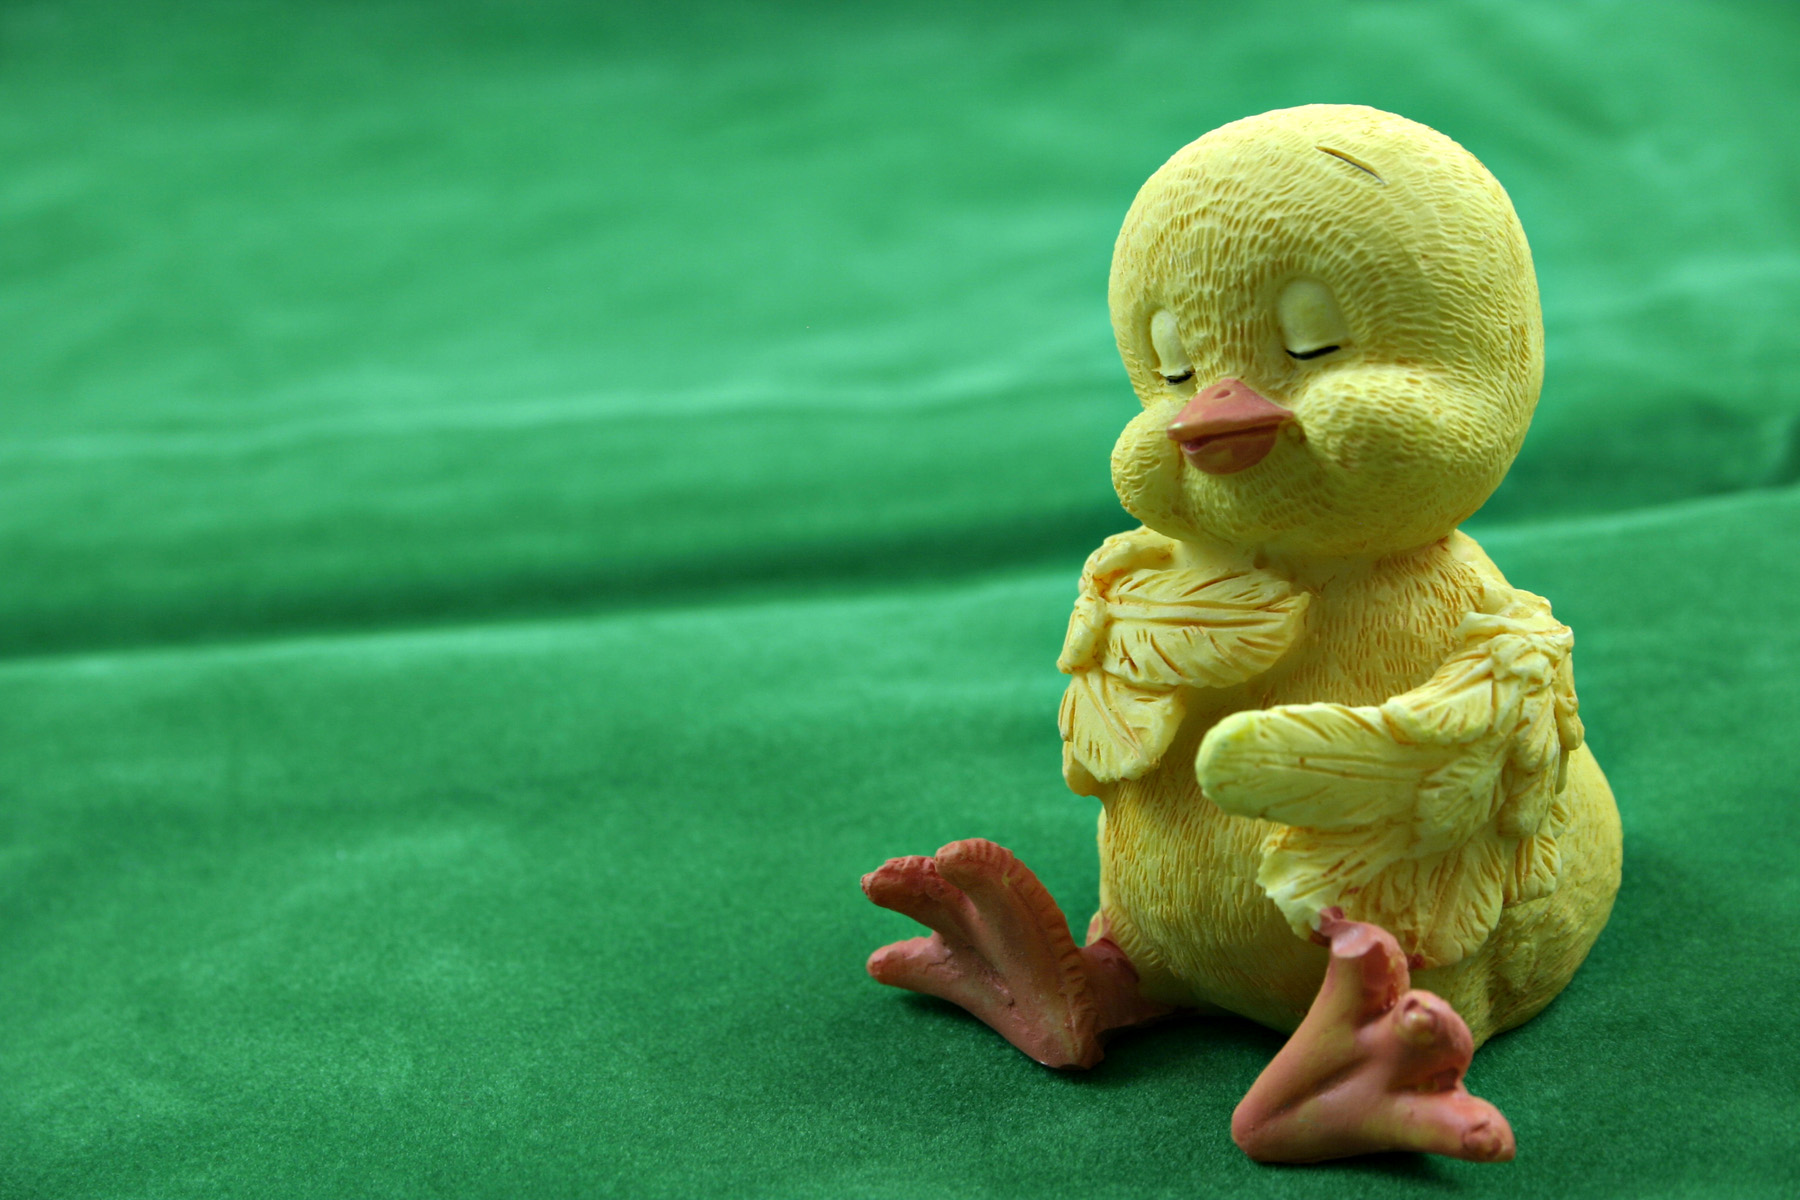 Sleepy easter chick, Bird, Chick, Cute, Easter, HQ Photo